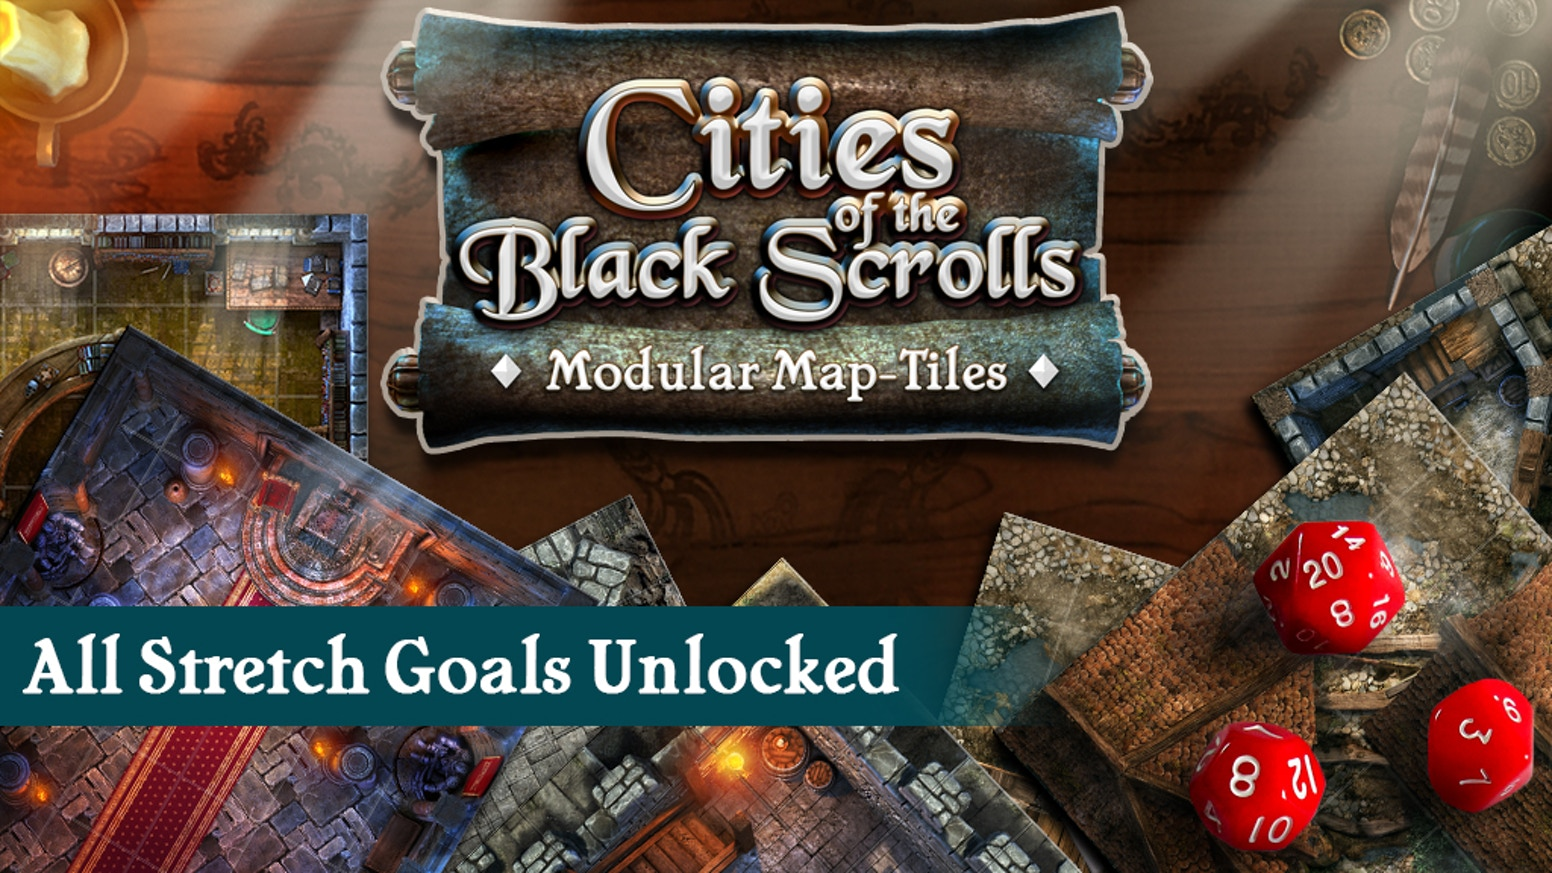 Cities of the Black Scrolls - Modular Map-Tile Sets